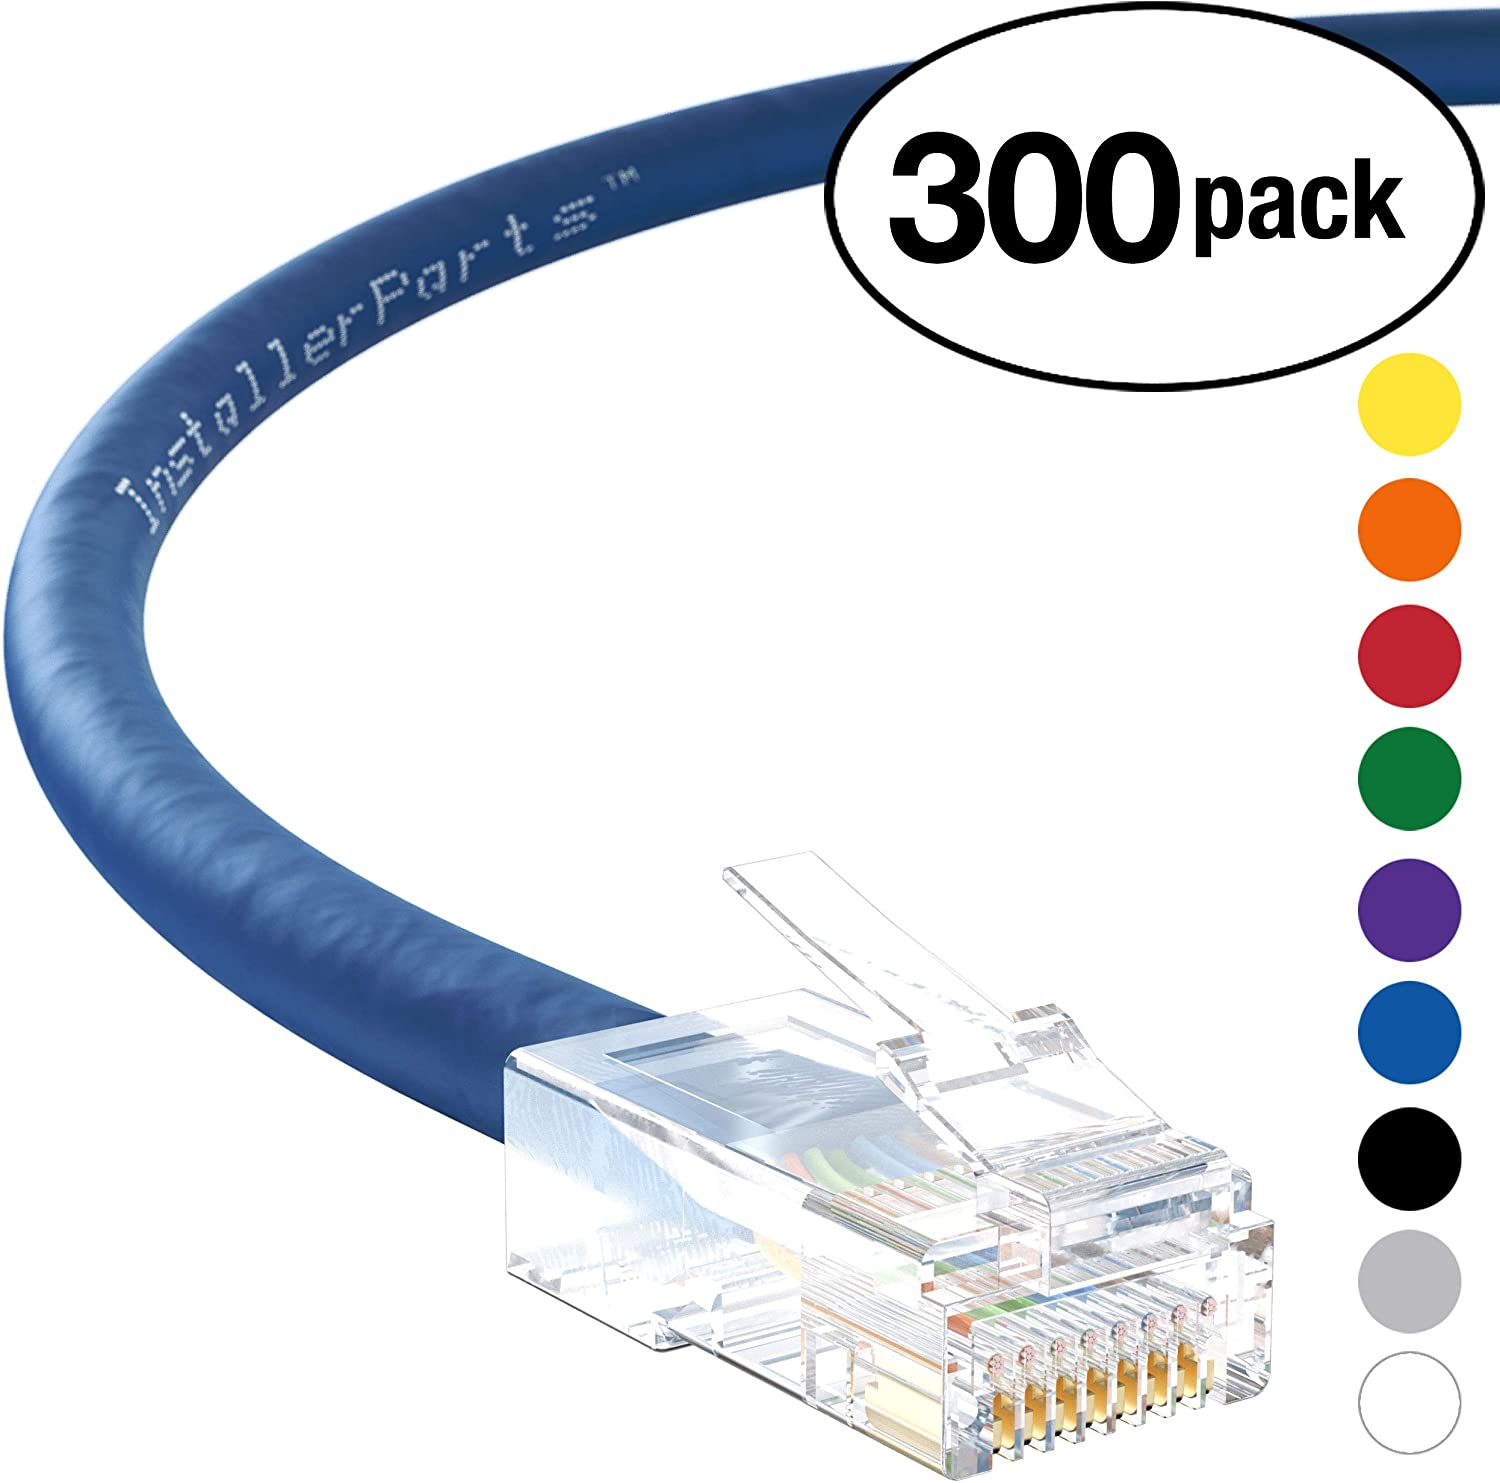 SK-32H540S SK-32H640G TX-42F430S SK-26H735S VR-4085DF 6FT AC Power Cord Cable for Westinghouse LCD TV Television Monitor SK-26H730S SK-32H590D SK-32H570D VR-5585DFZ TX-42F810G